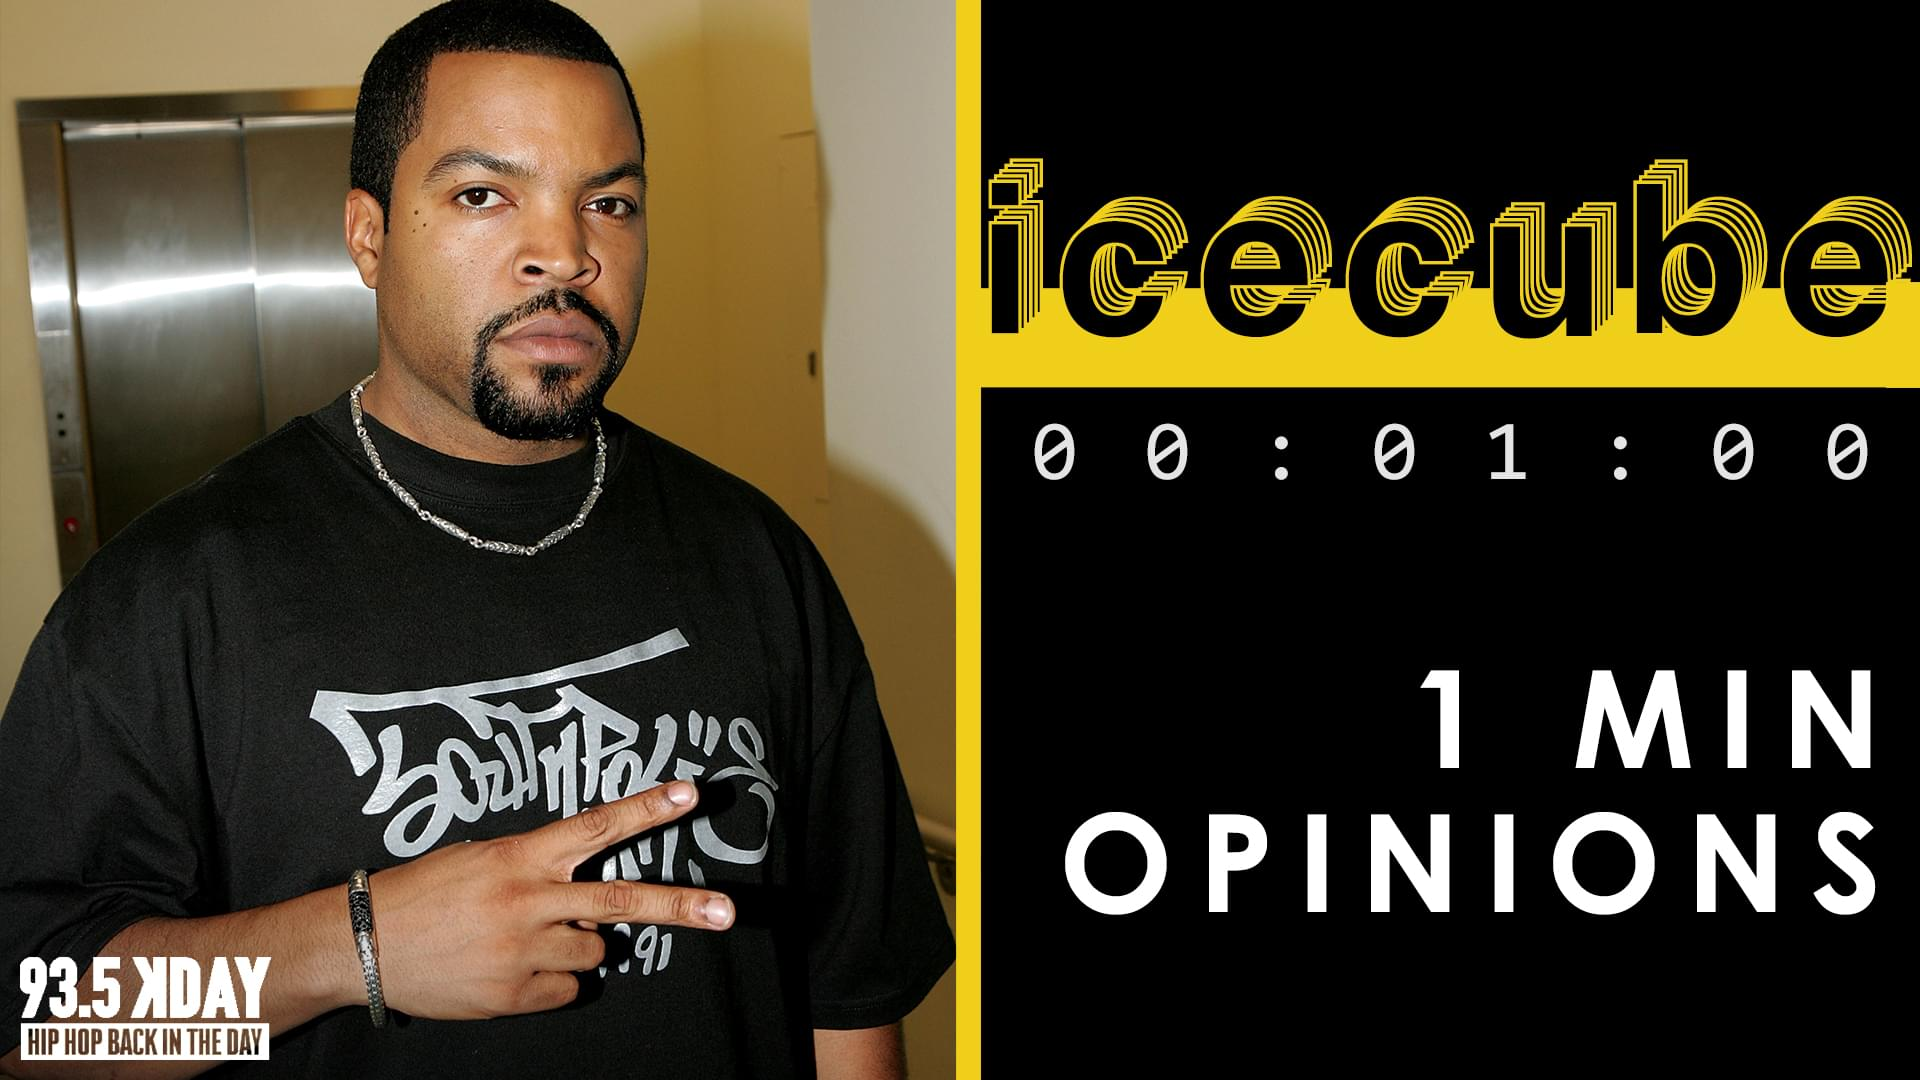 KDAY DJ's Share Their '1 Min Opinions' On Ice Cube